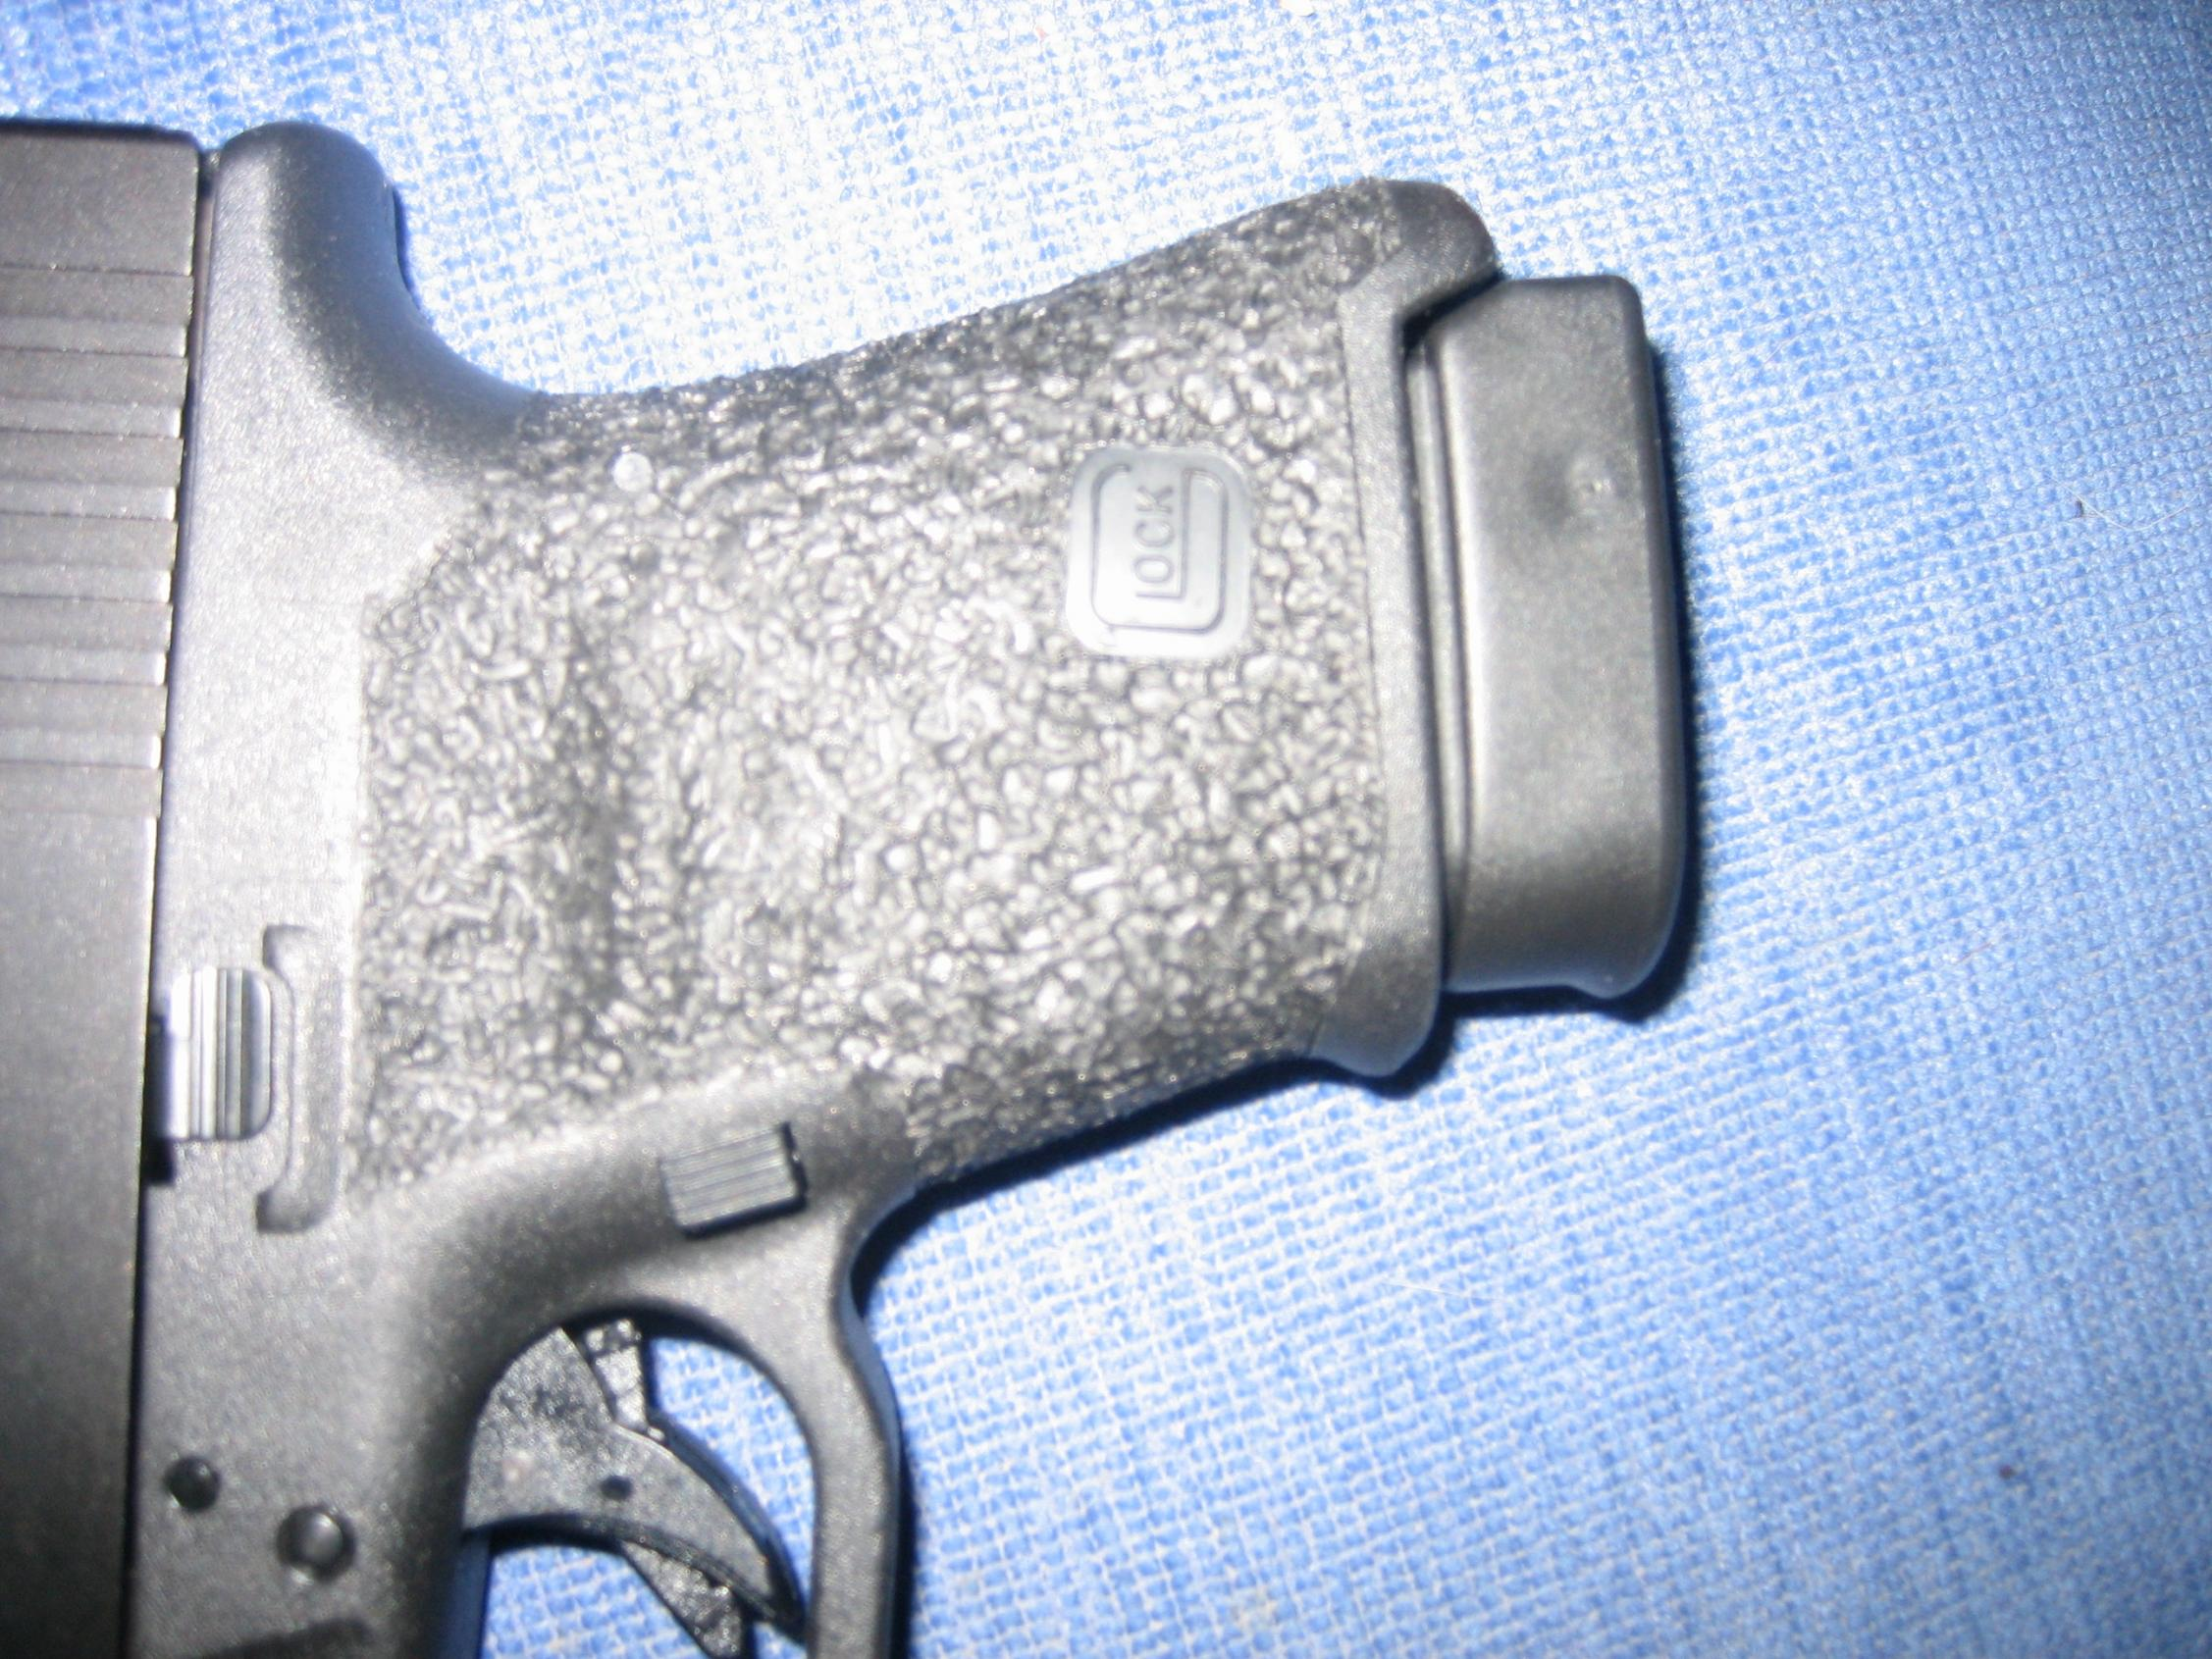 Glock G36 w/ grip reduction-grip-reduction-003.jpg